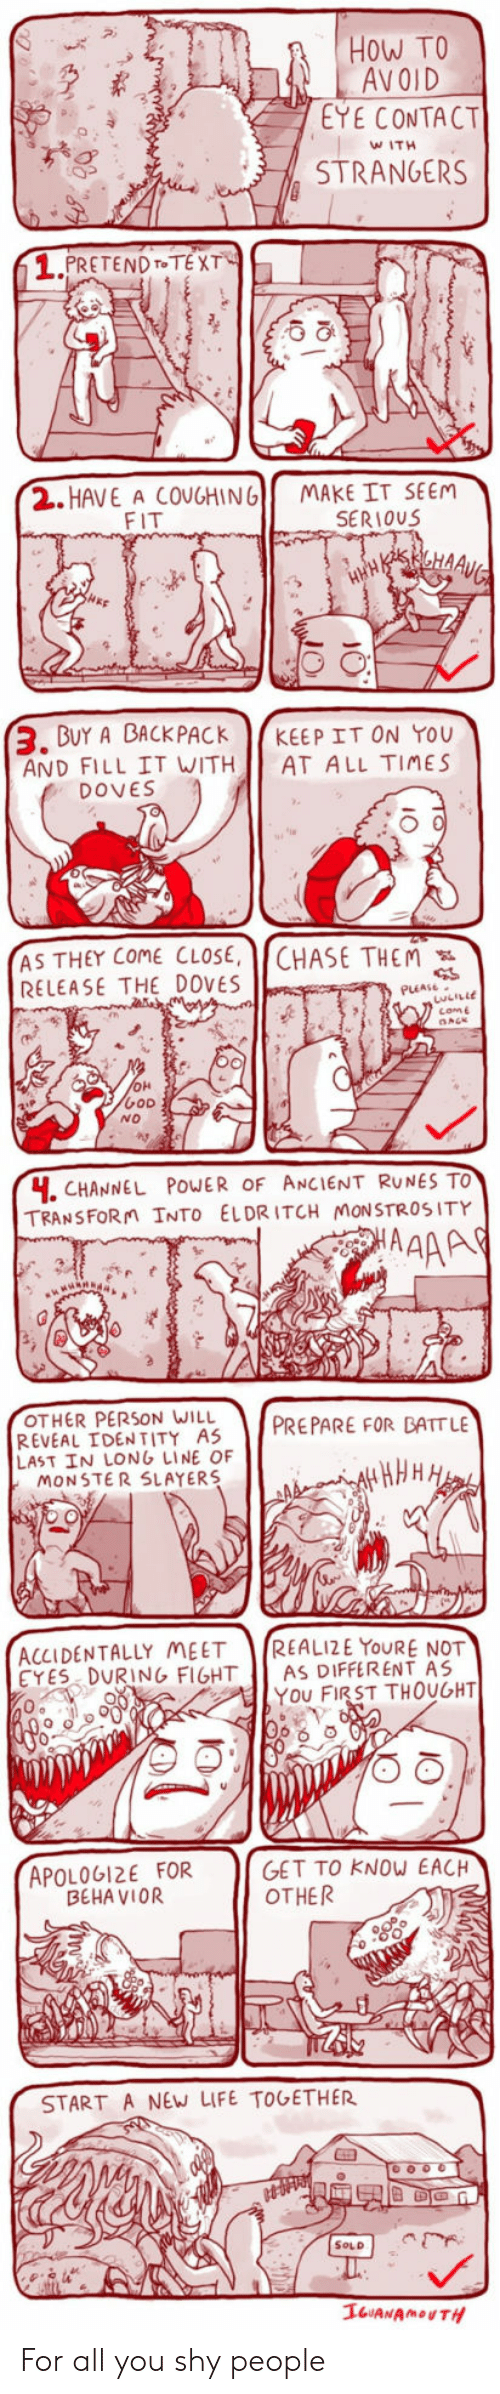 Life, Monster, and Chase: How TO  AVOID  EYE CONTACT  WITH  STRANGERS  1.  PRETENDT TEX  2. HAVE A COUGHING  FIT  MAKE IT SEEM  SERIOUS  BUY A BACKPACK KEEP IT ON You  AND FILL IT WITH AT ALL TIMES  DOVES  AS THEY COME CLOSE, CHASE THEM  RELEASE THE DOVES  come  NO  H. CHANNEL POWER OF ANCIENT RUNES TO  TRANSFORn INTO ELDRITCH MONSTROSITY  OTHER PERSON WILL  PREPARE FOR BATTLE  REVEAL IDENTITY AS  LAST İN LONG LINE OF  MONSTER SLAYERS  ACCIDENTALLY MEET REALIZE YOURE NOT  CYES DURING FIGHT AS DIFFERENT AS  YOU FIRST THOUGHT  APOLOGI2E FOR  BEHA VIOR  GET TO KNOW EACH  OTHER  START A NEW LIFE ToGETHER  SOLD For all you shy people